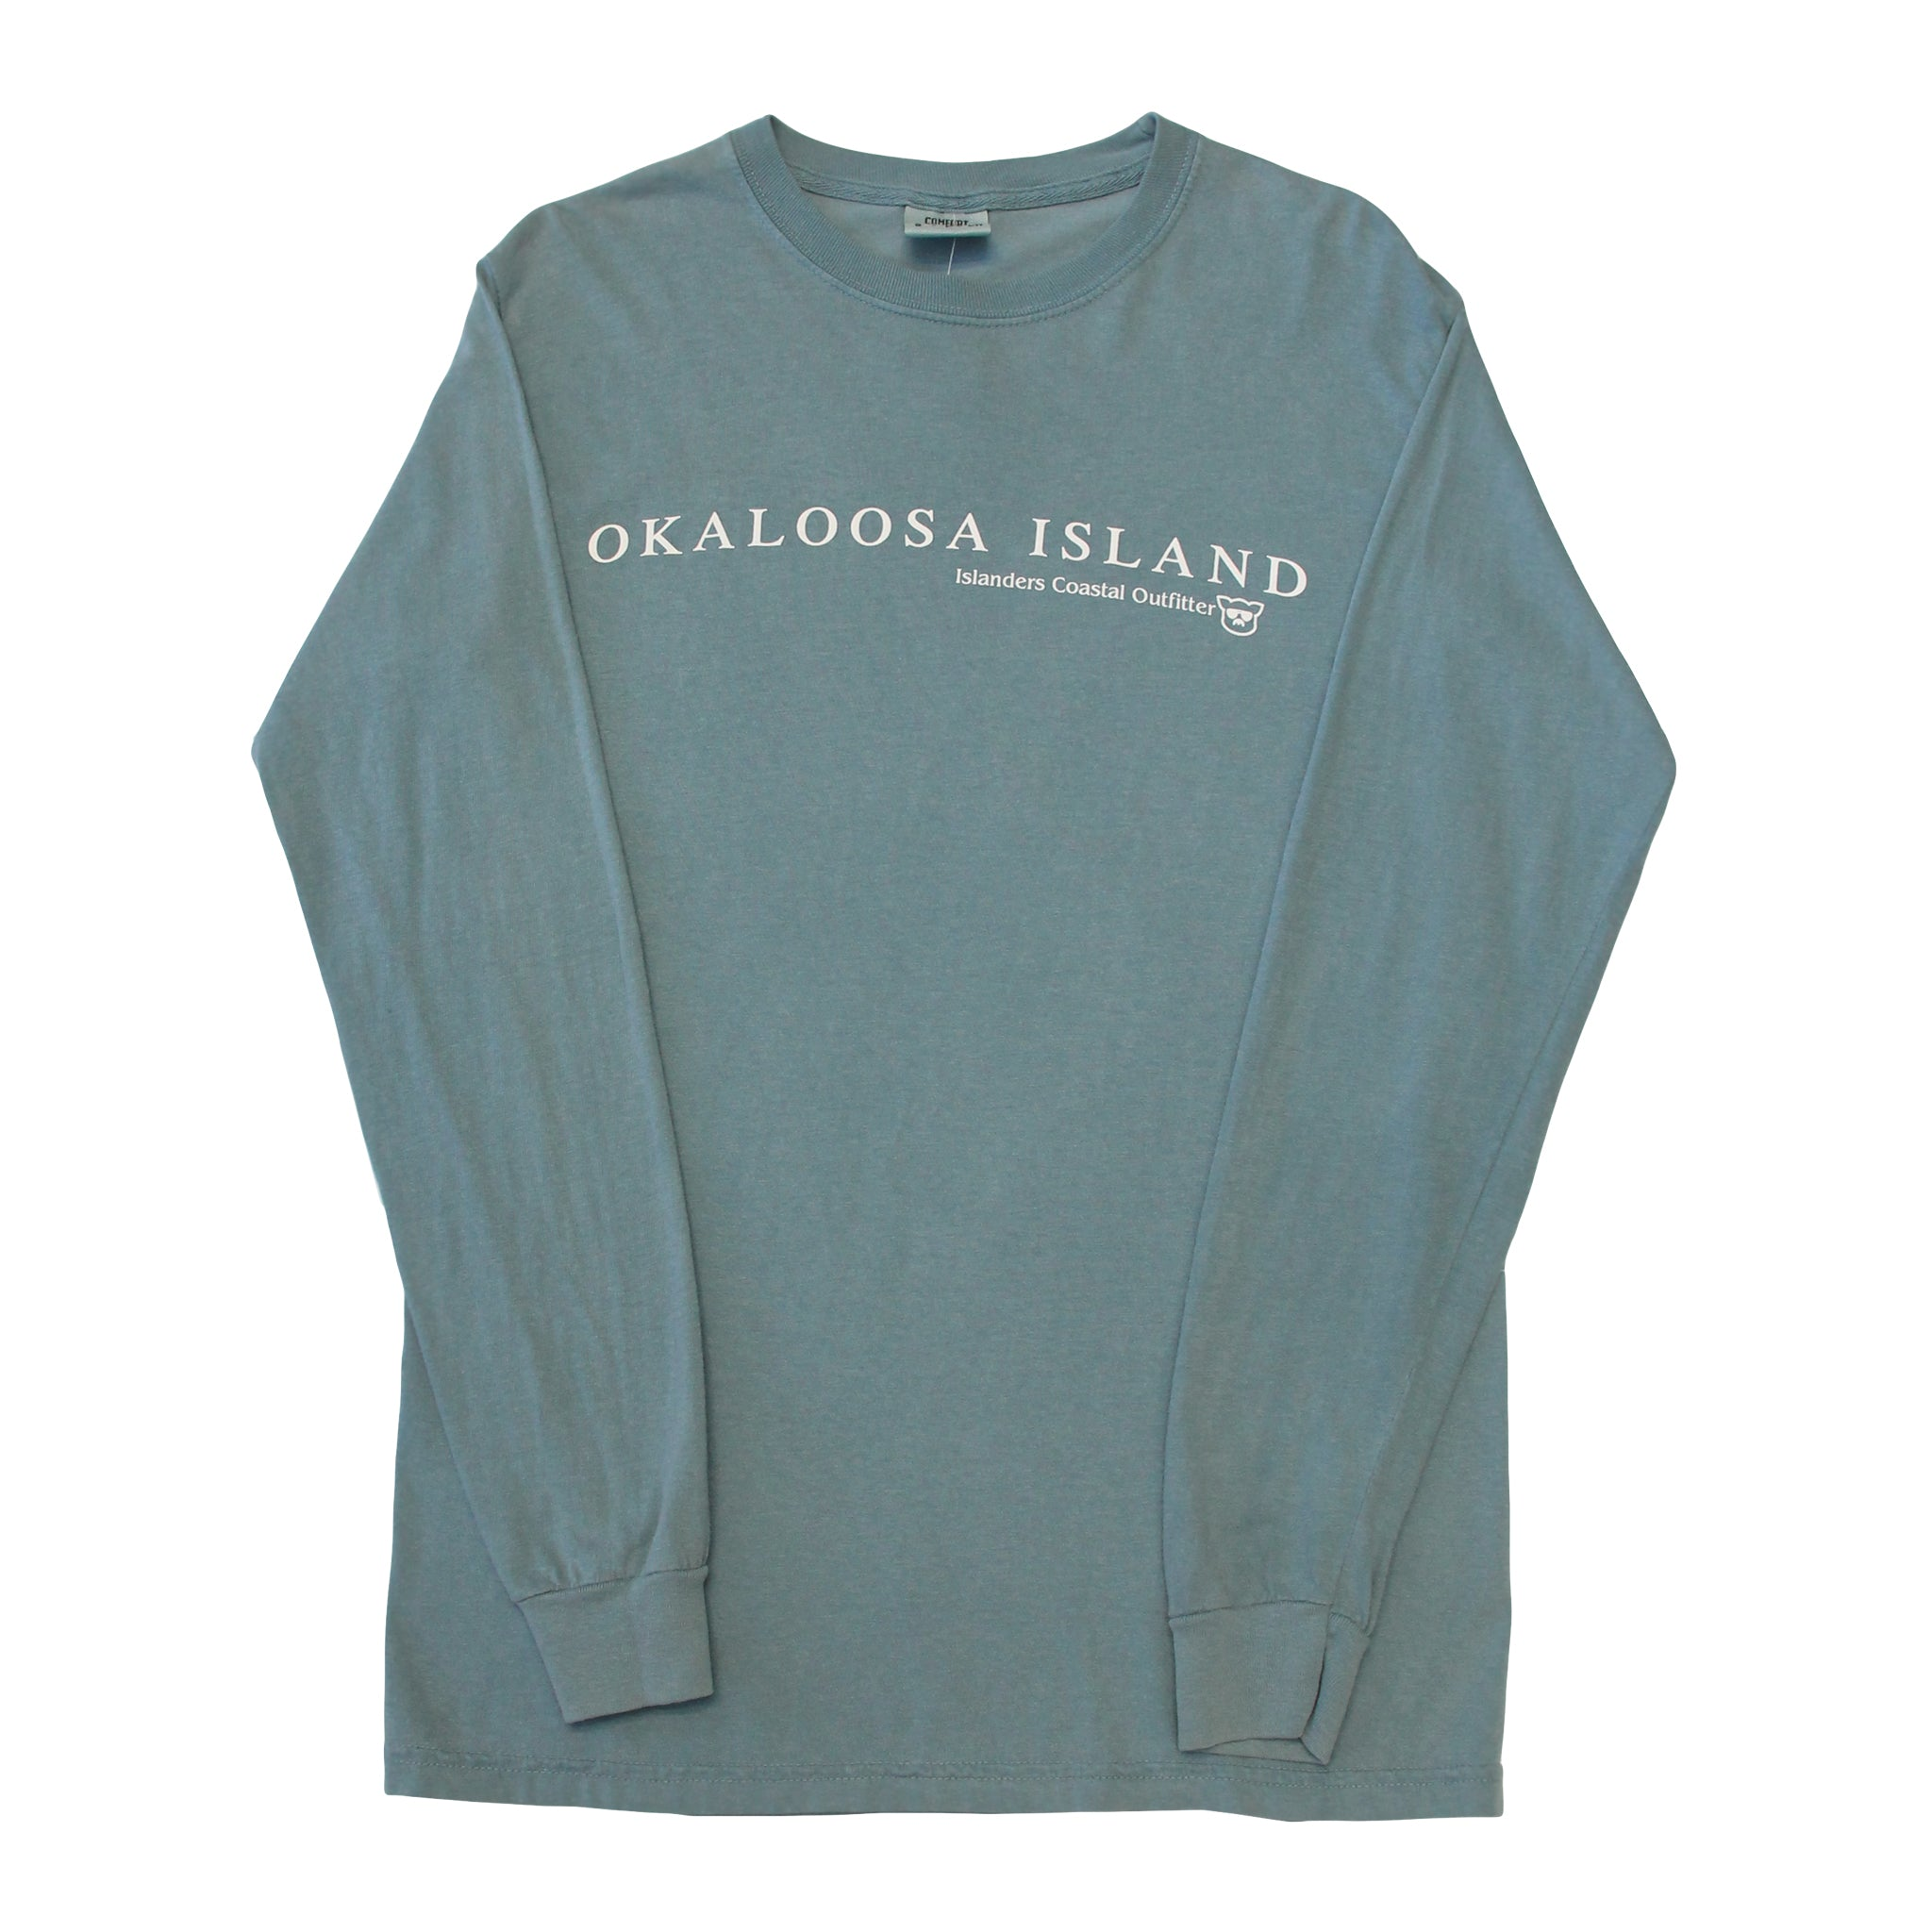 Islanders Simple Okaloosa Island Long Sleeve T-Shirt